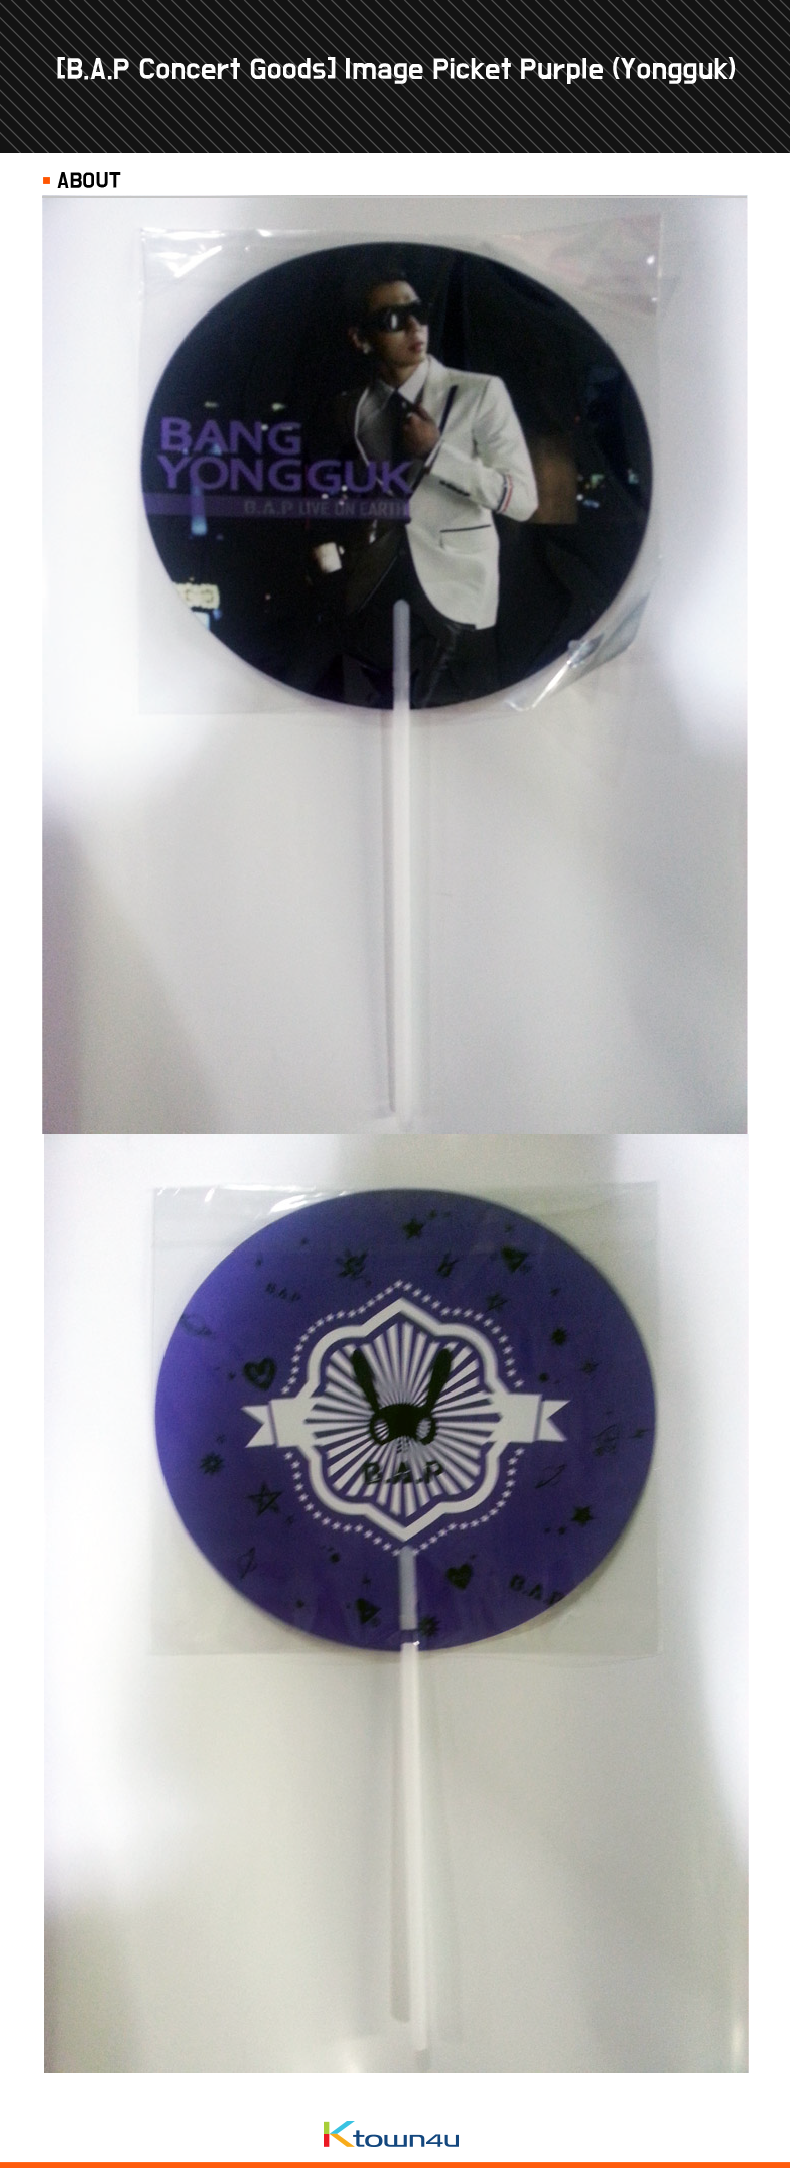 [B.A.P Concert Goods] Image Picket Purple (Yongguk)